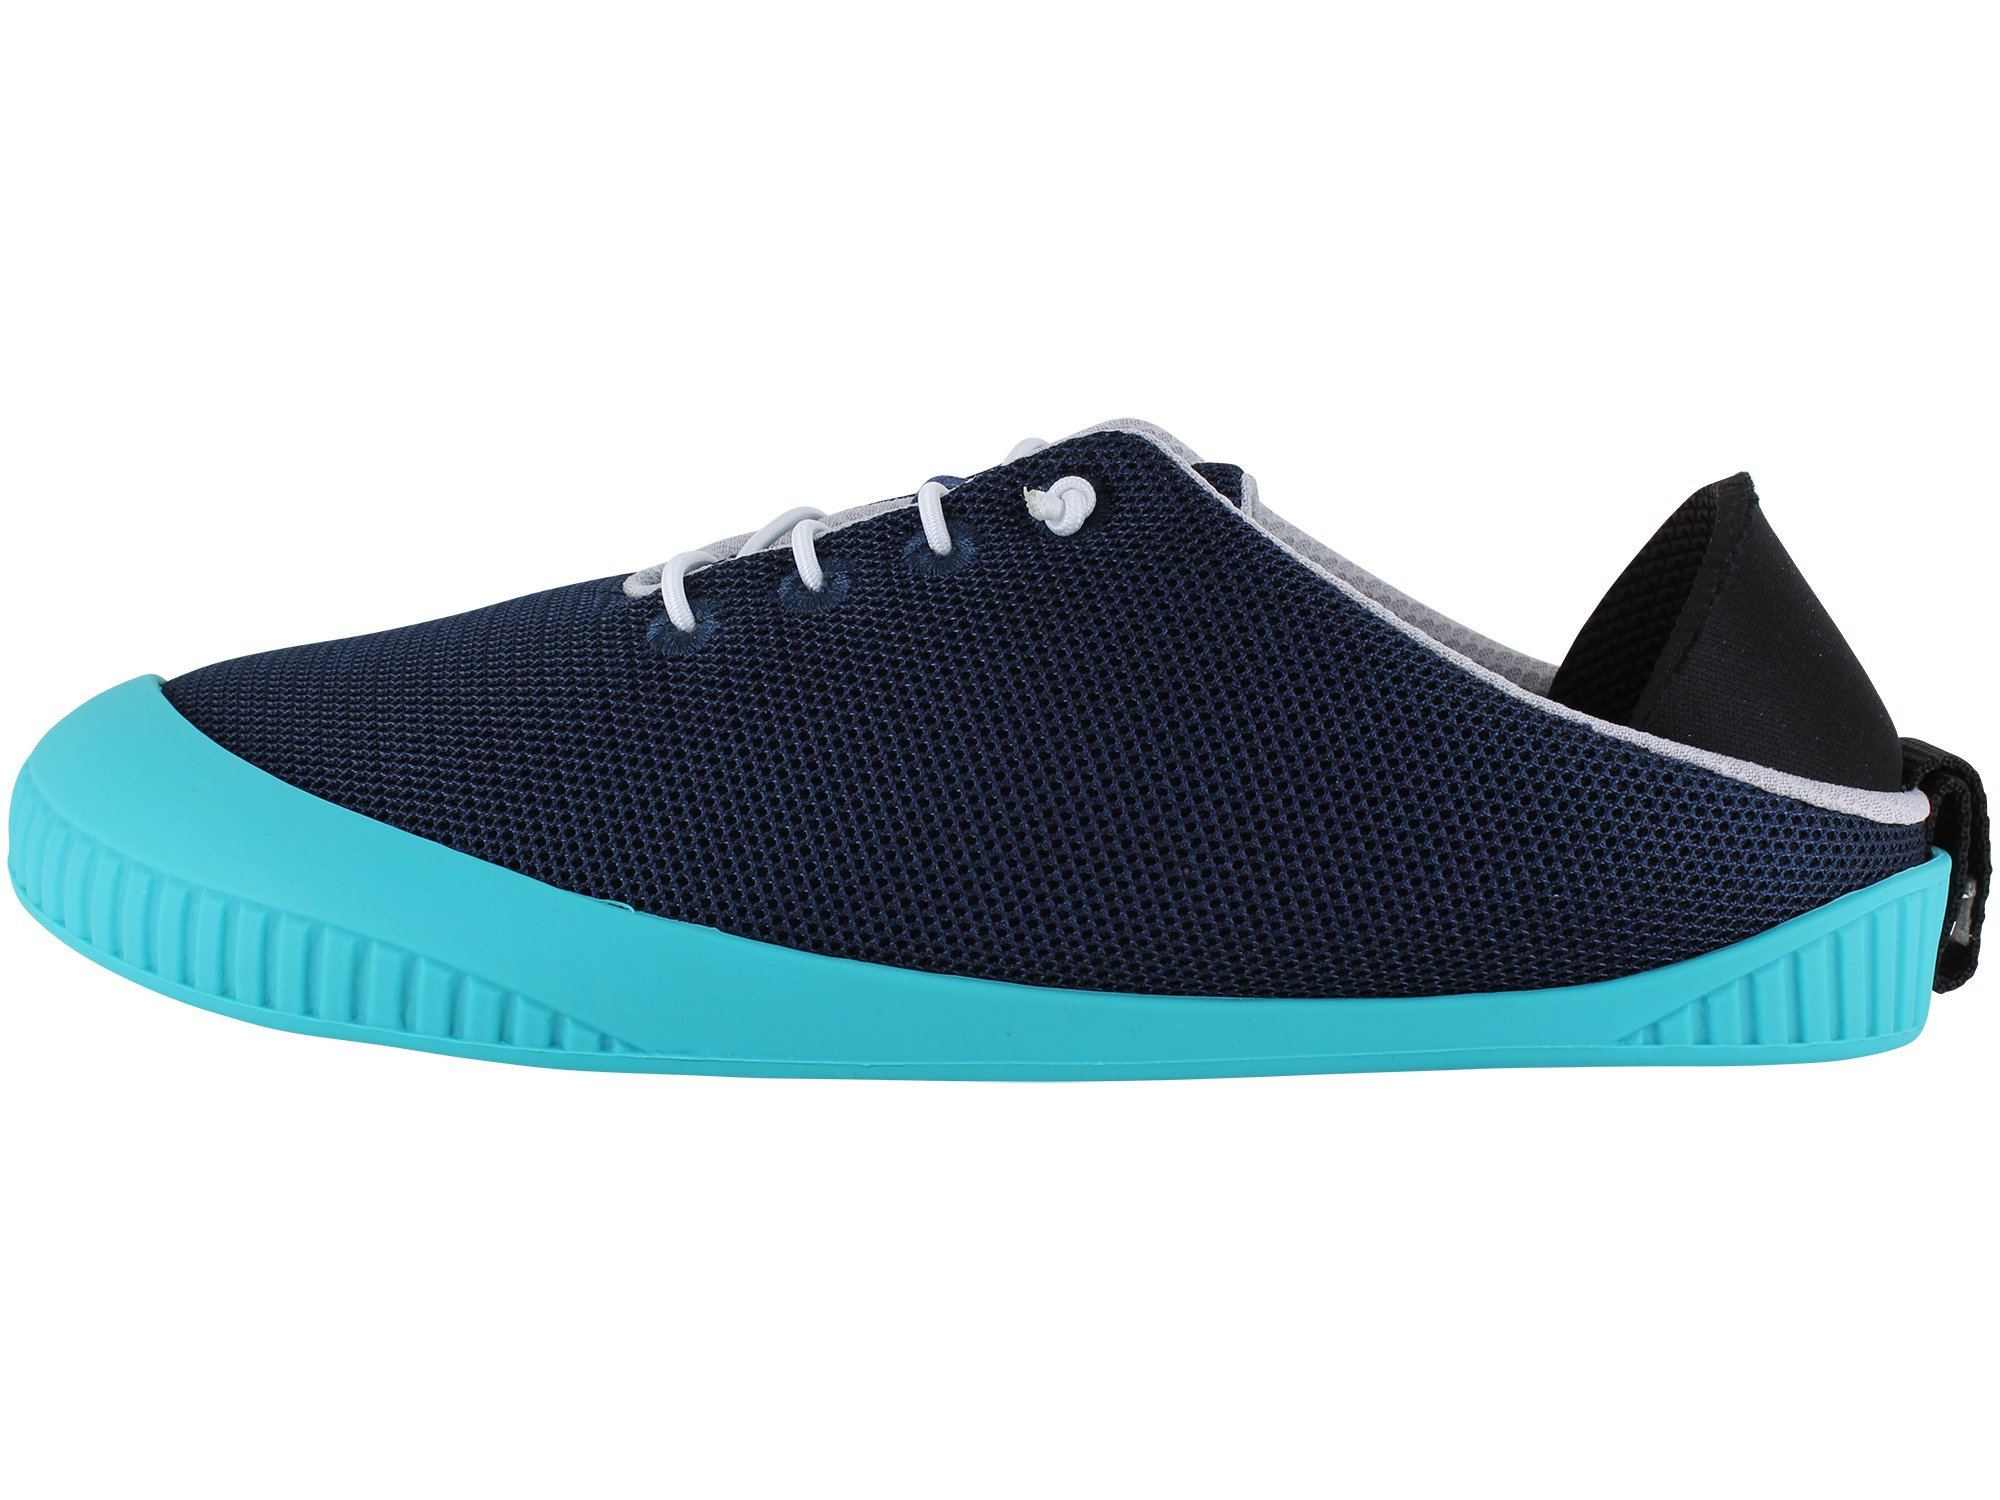 Dualyz Fit Breezy Summer Slipper Shoe Navy MESH with Teal Sole